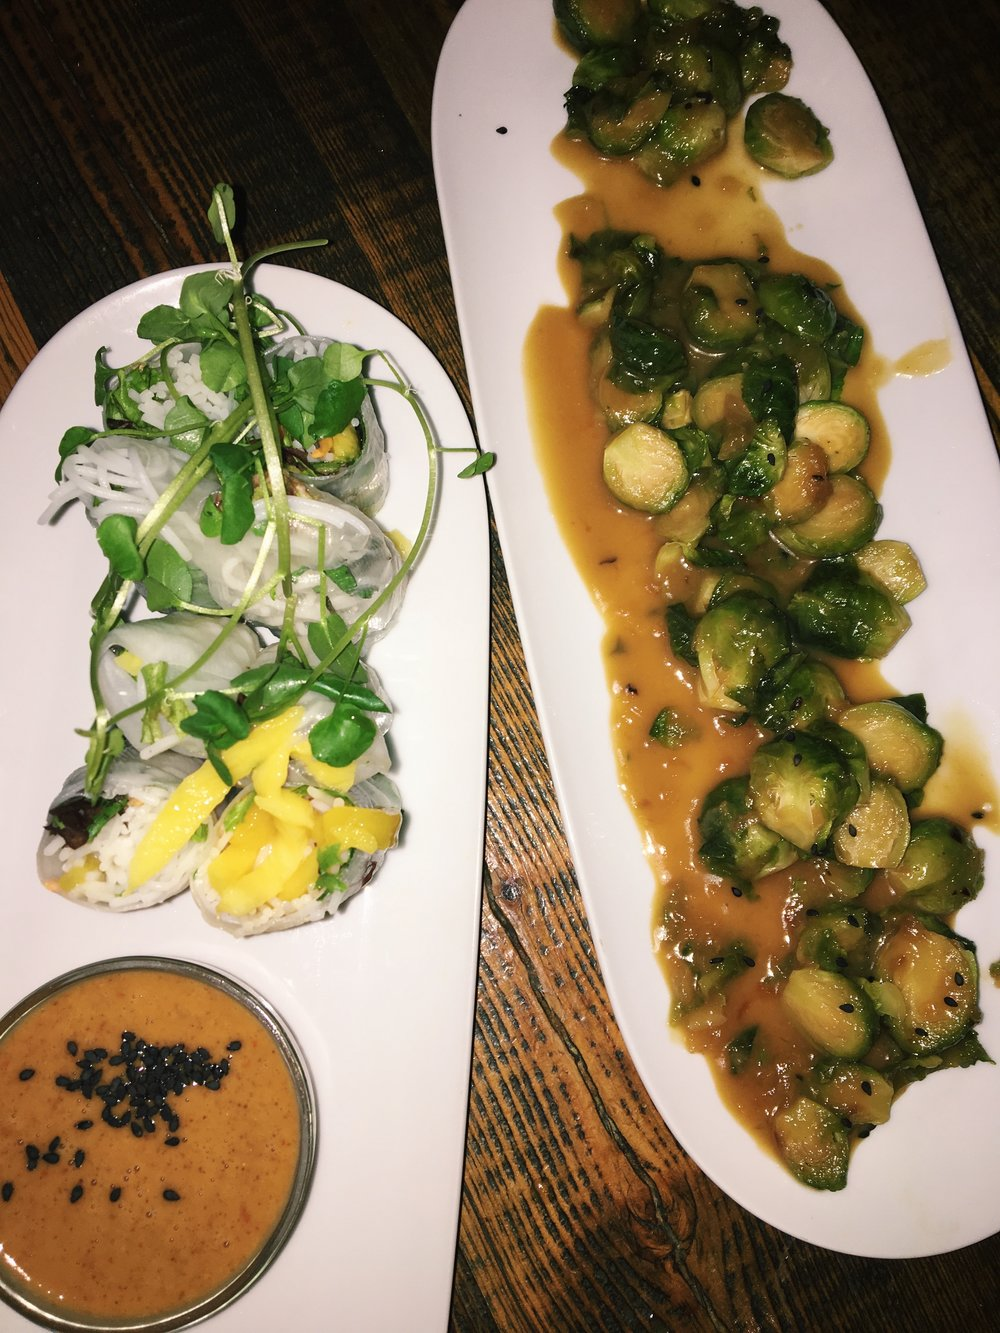 John Legend wrote All of Me about these Brussel Sprouts you can quote us on that